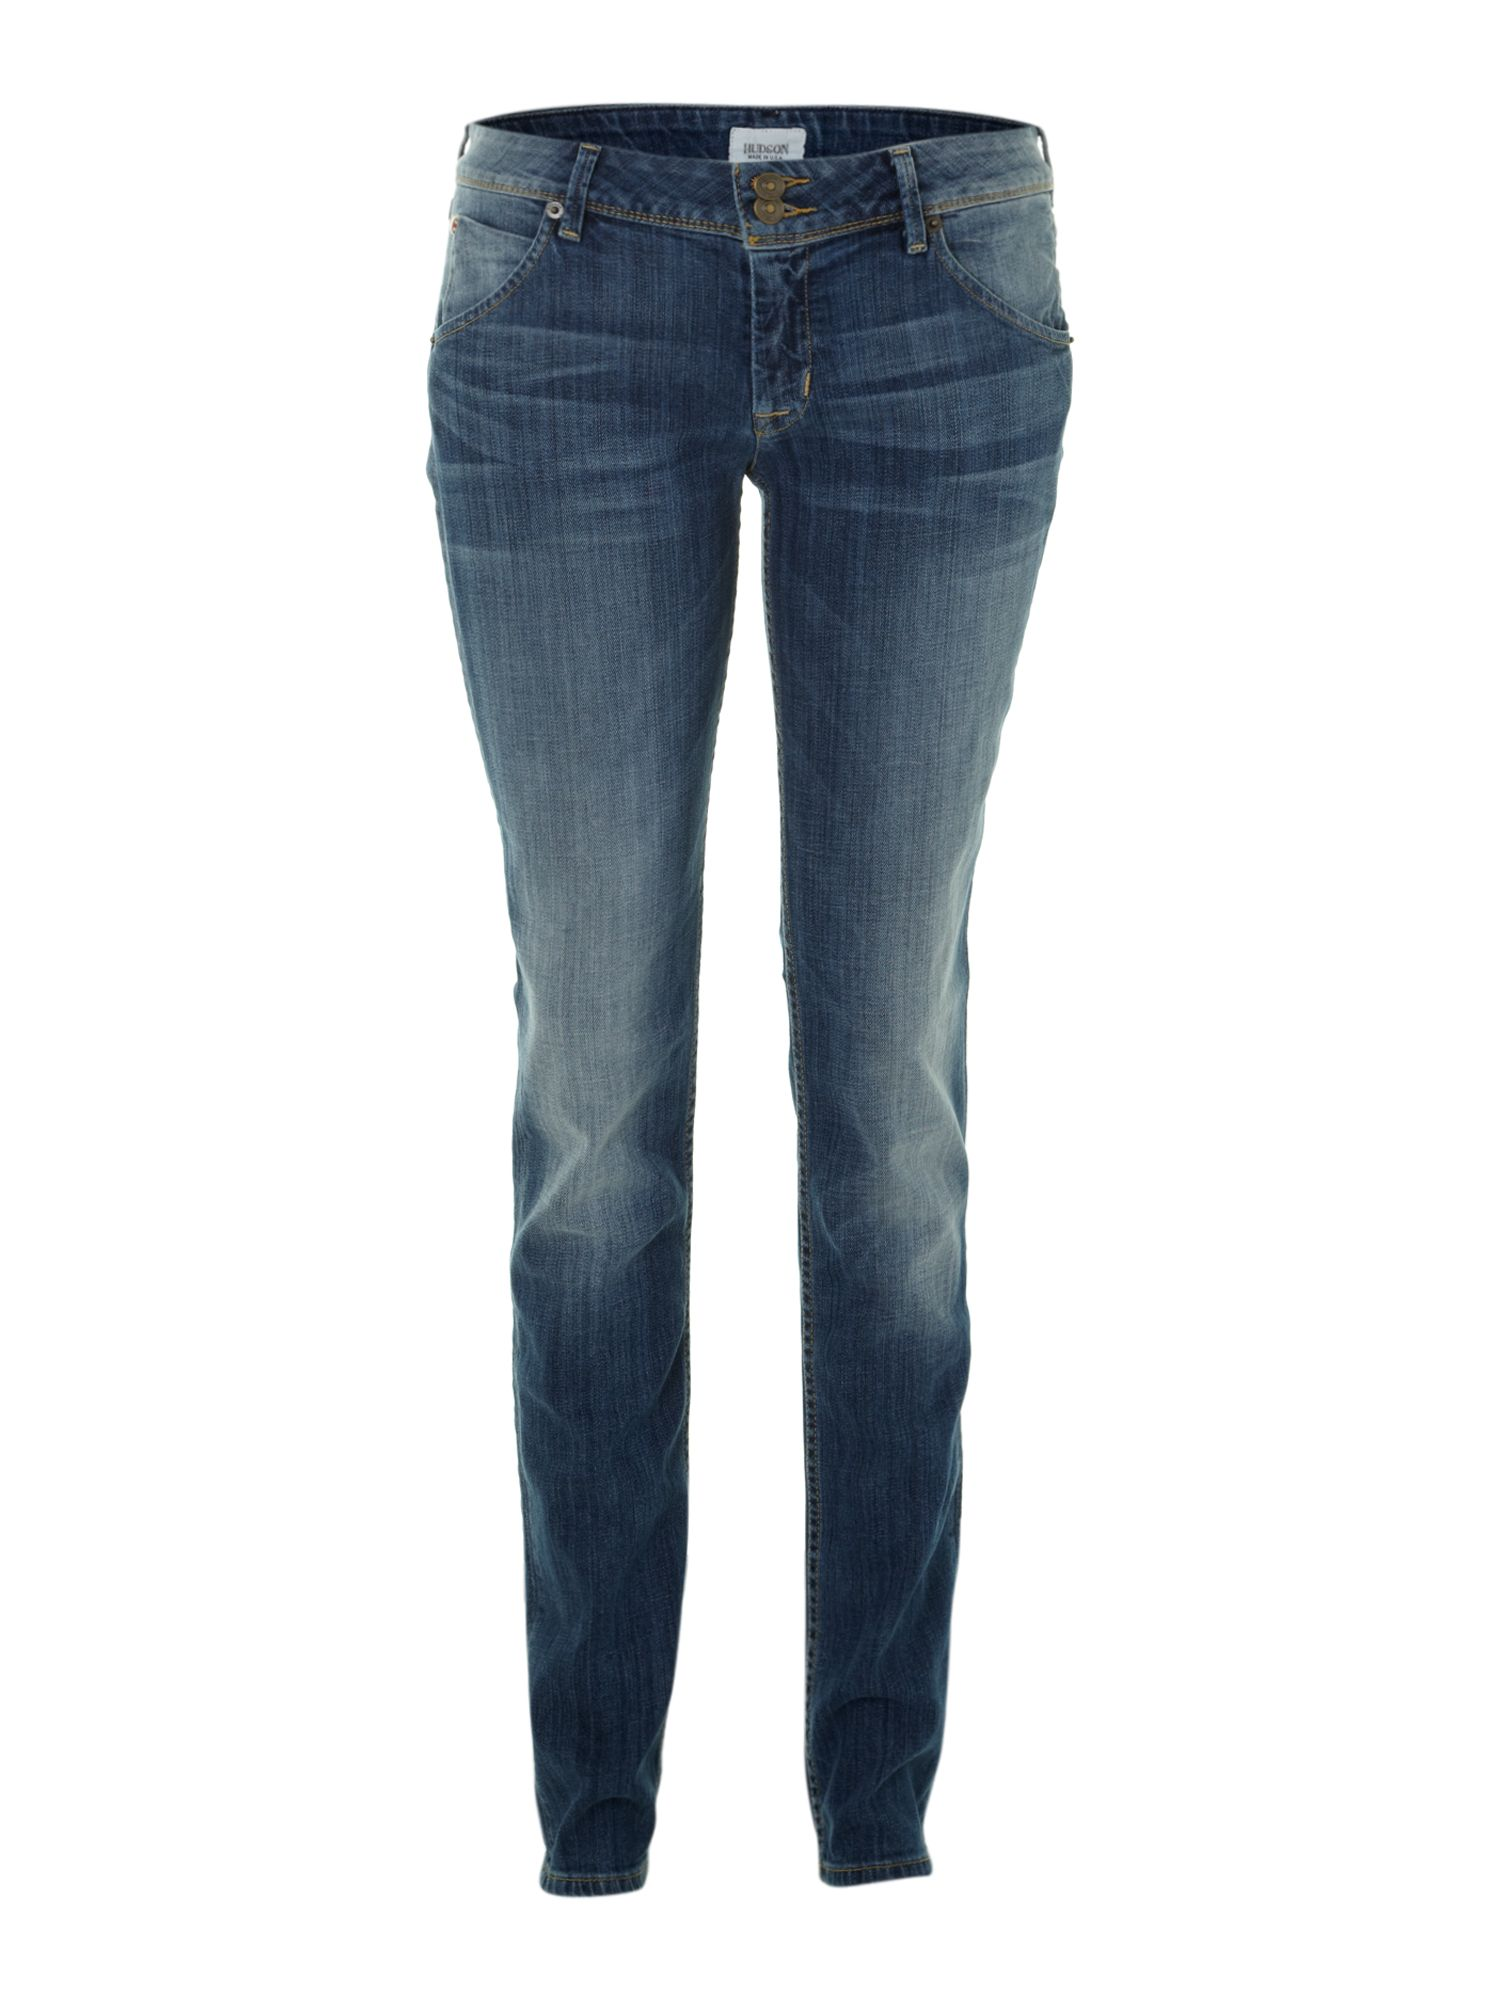 Collin signature skinny jeans in Milo